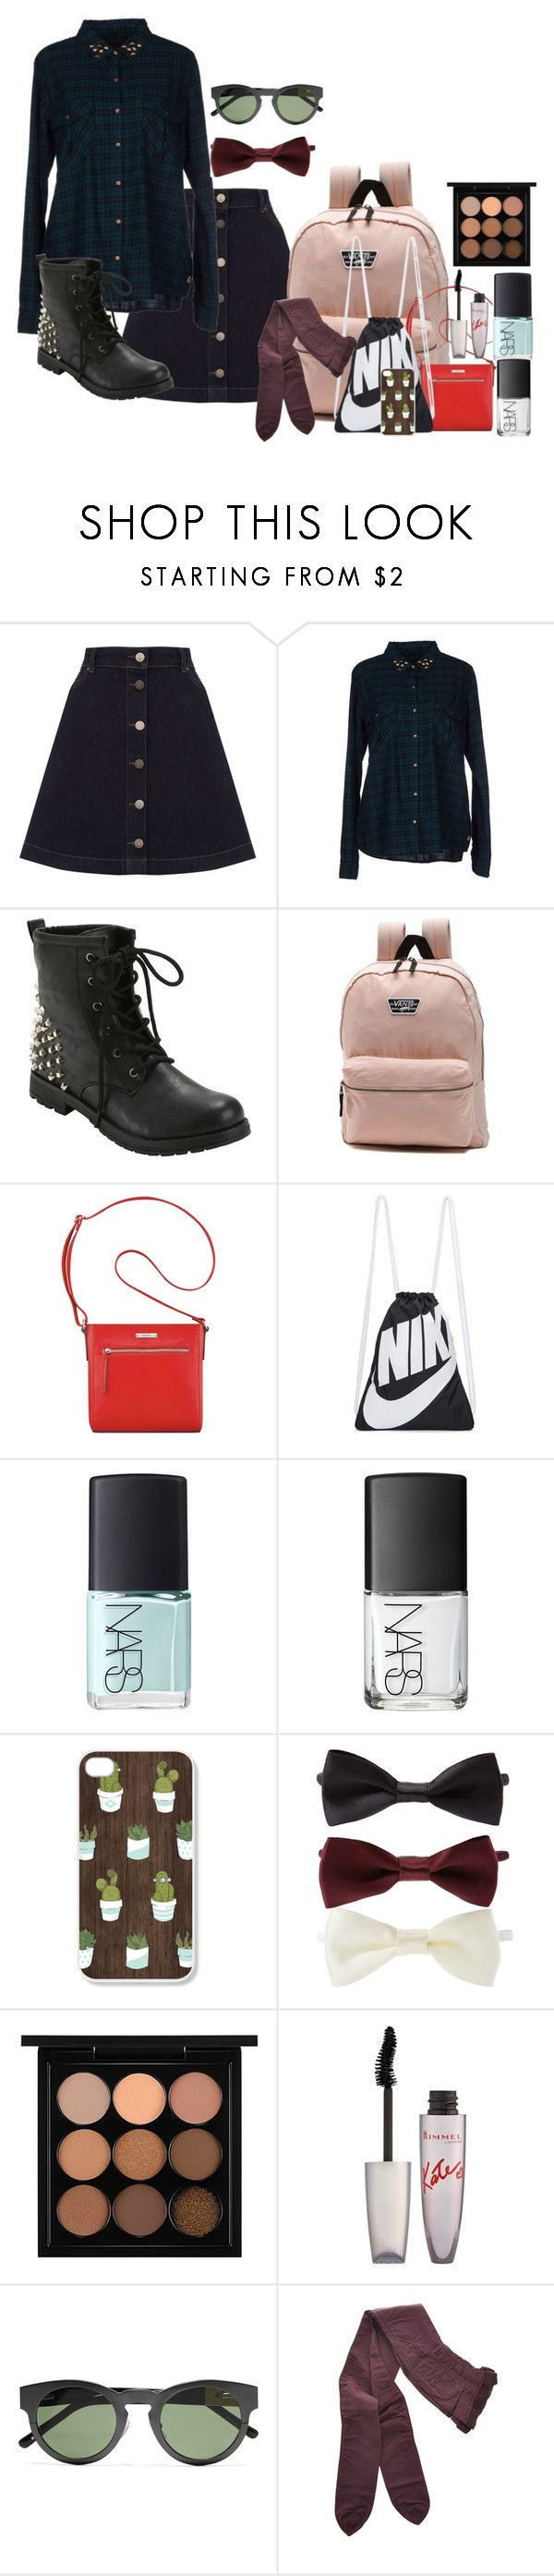 """""""Sammi McCall 2x6"""" by samtiritilli666lol ❤ liked on Polyvore featuring Oasis, Maison Scotch, Hot Topic, Vans, Nine West, NIKE, NARS Cosmetics, Forever 21, Rimmel and 3.1 Phillip Lim"""